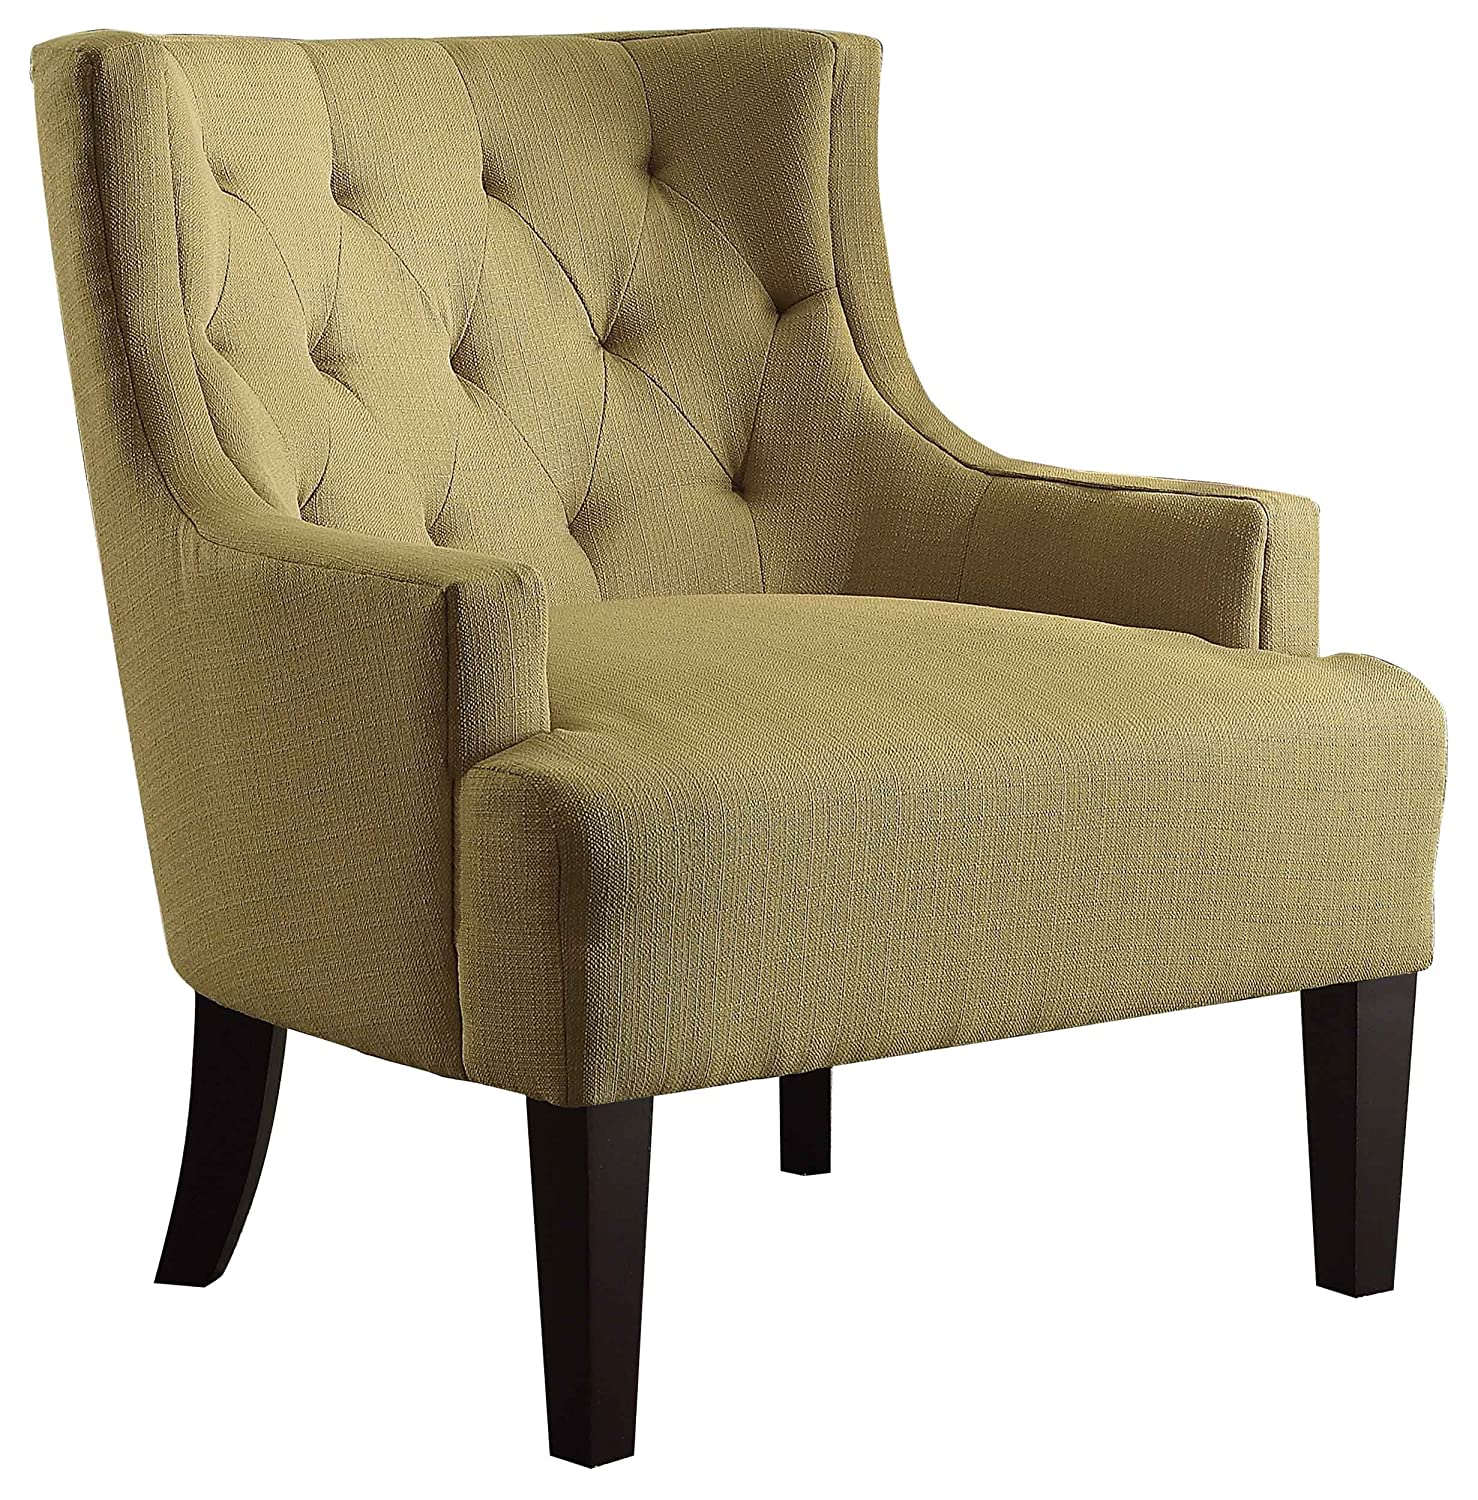 Amazon Homelegance 1233MD Tufted Fabric Accent Chair with